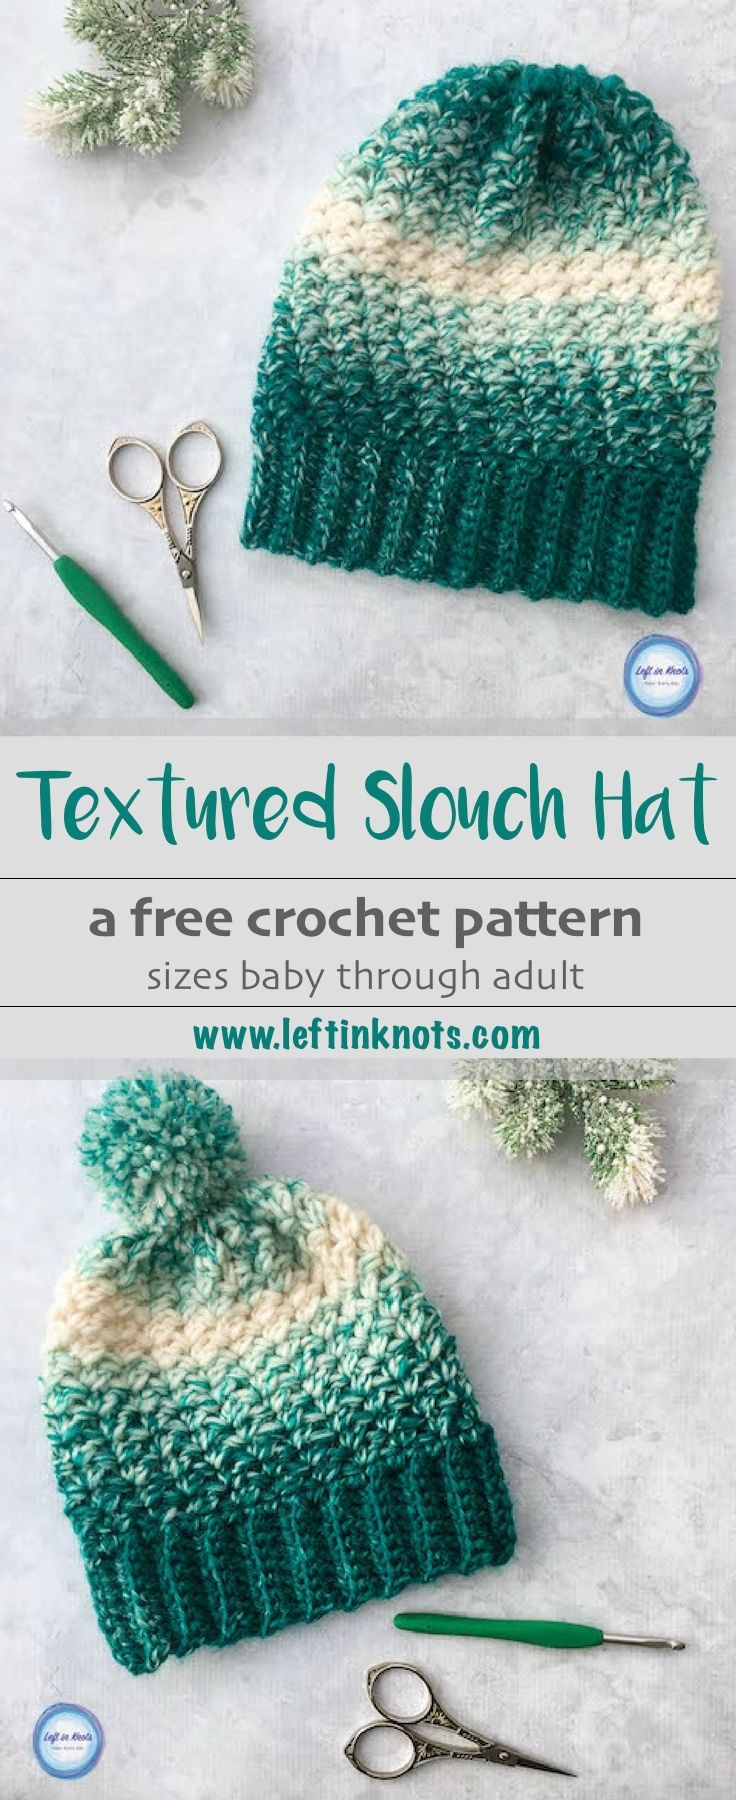 This free crochet pattern combines simple texture with the stunning Lion Brand Scarfie yarn to create a modern, beginner-friendly hat! The Snowball Slouch Hat takes just half a skein of Lion Brand Scarfie yarn and it can be made in four different sizes (baby, toddler, child and adult). This is the LAST free crochet pattern of my Seven Days of Scarfie 2017 pattern collection. #crochet #freecrochetpattern